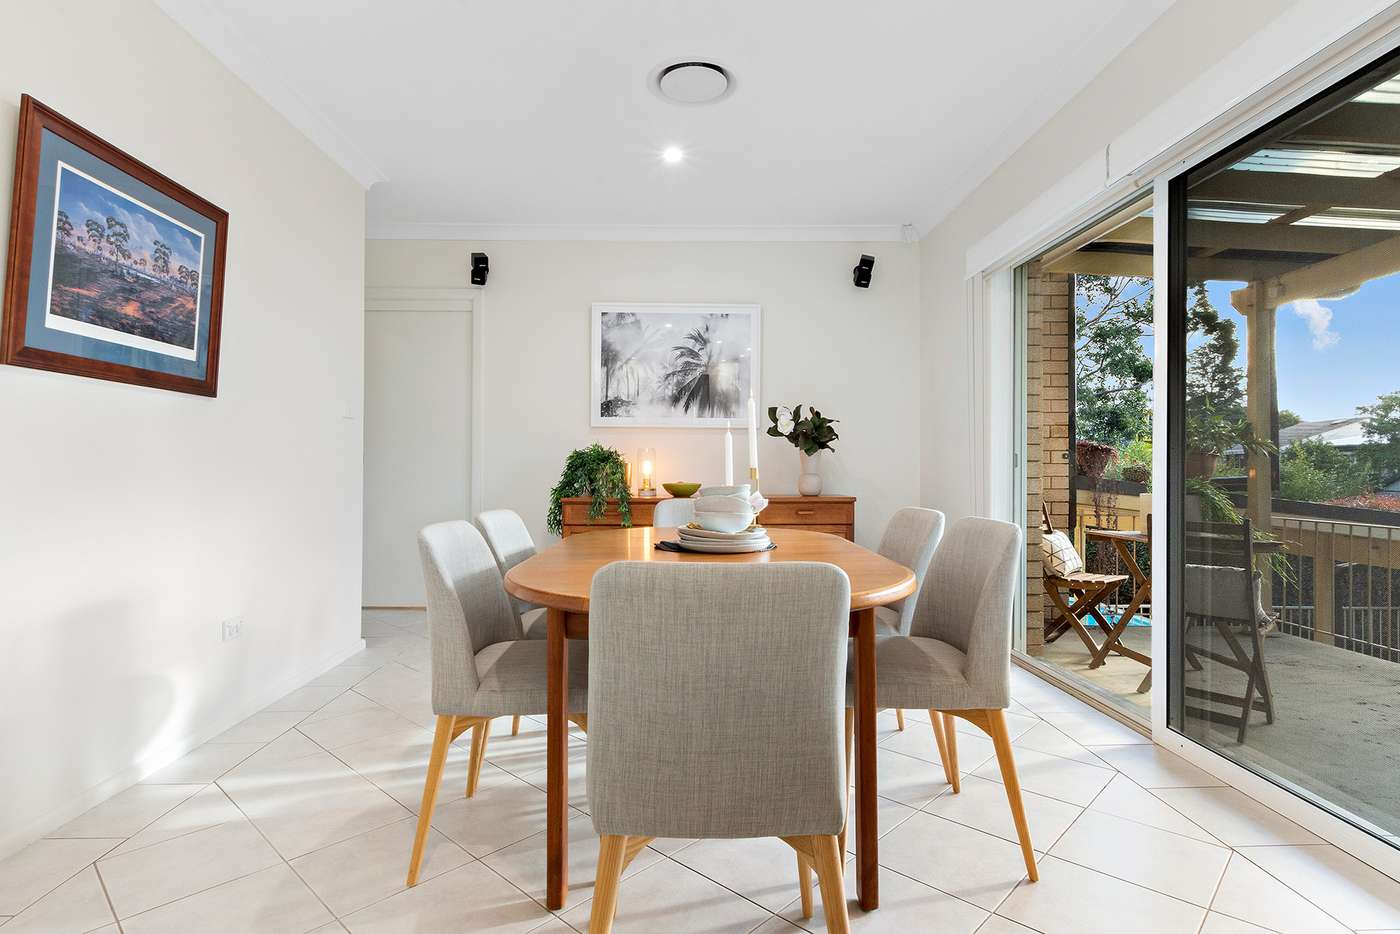 Fifth view of Homely house listing, 33 Lochinvar Parade, Carlingford NSW 2118